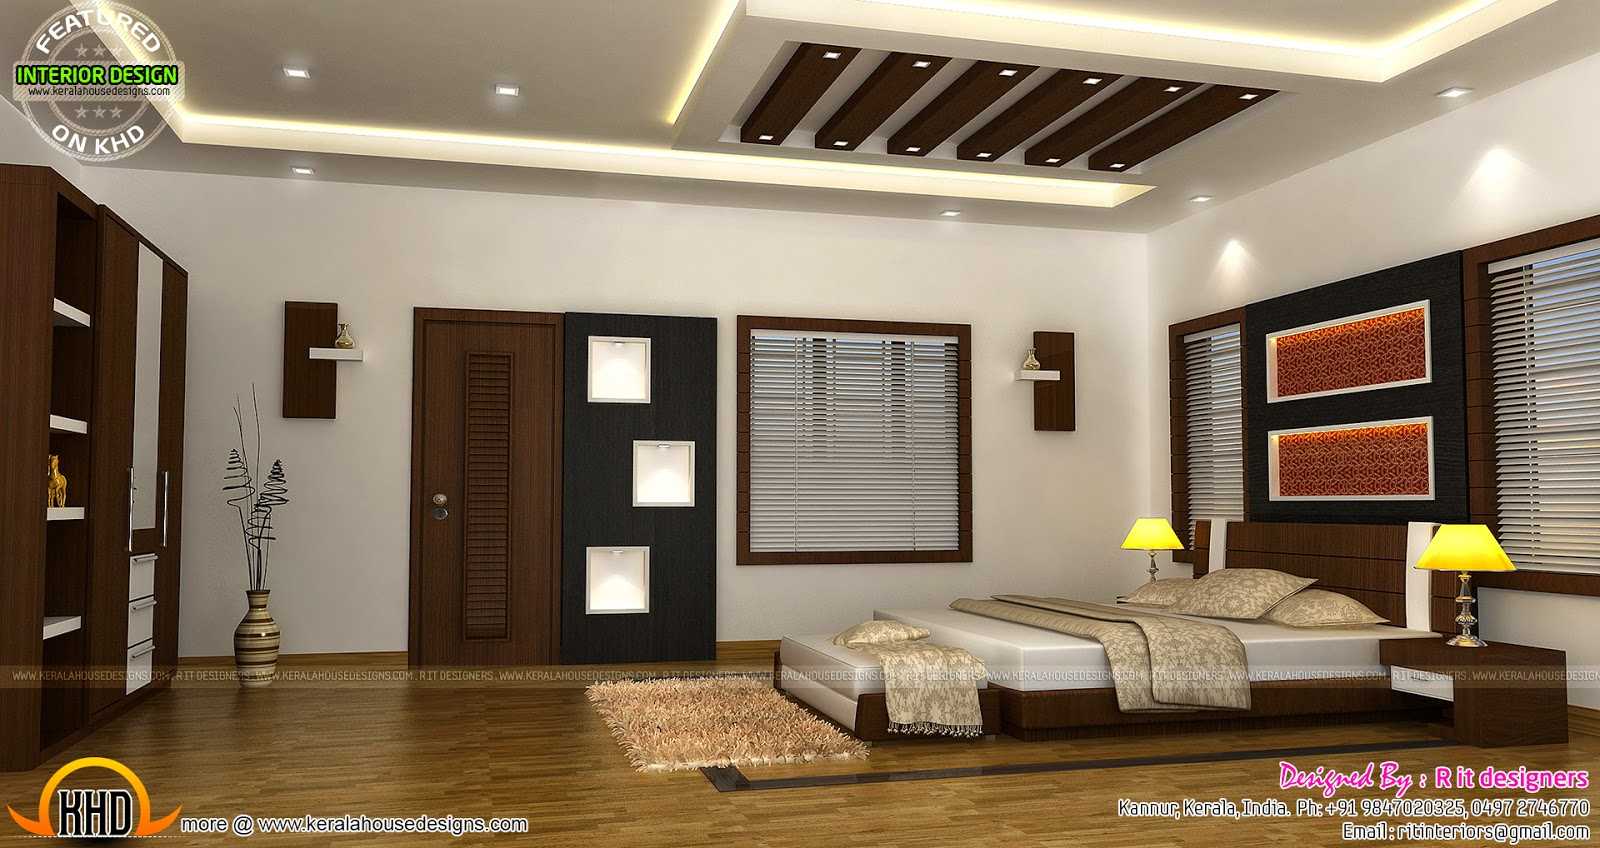 Bedroom interior design with cost - Kerala home design and floor plans